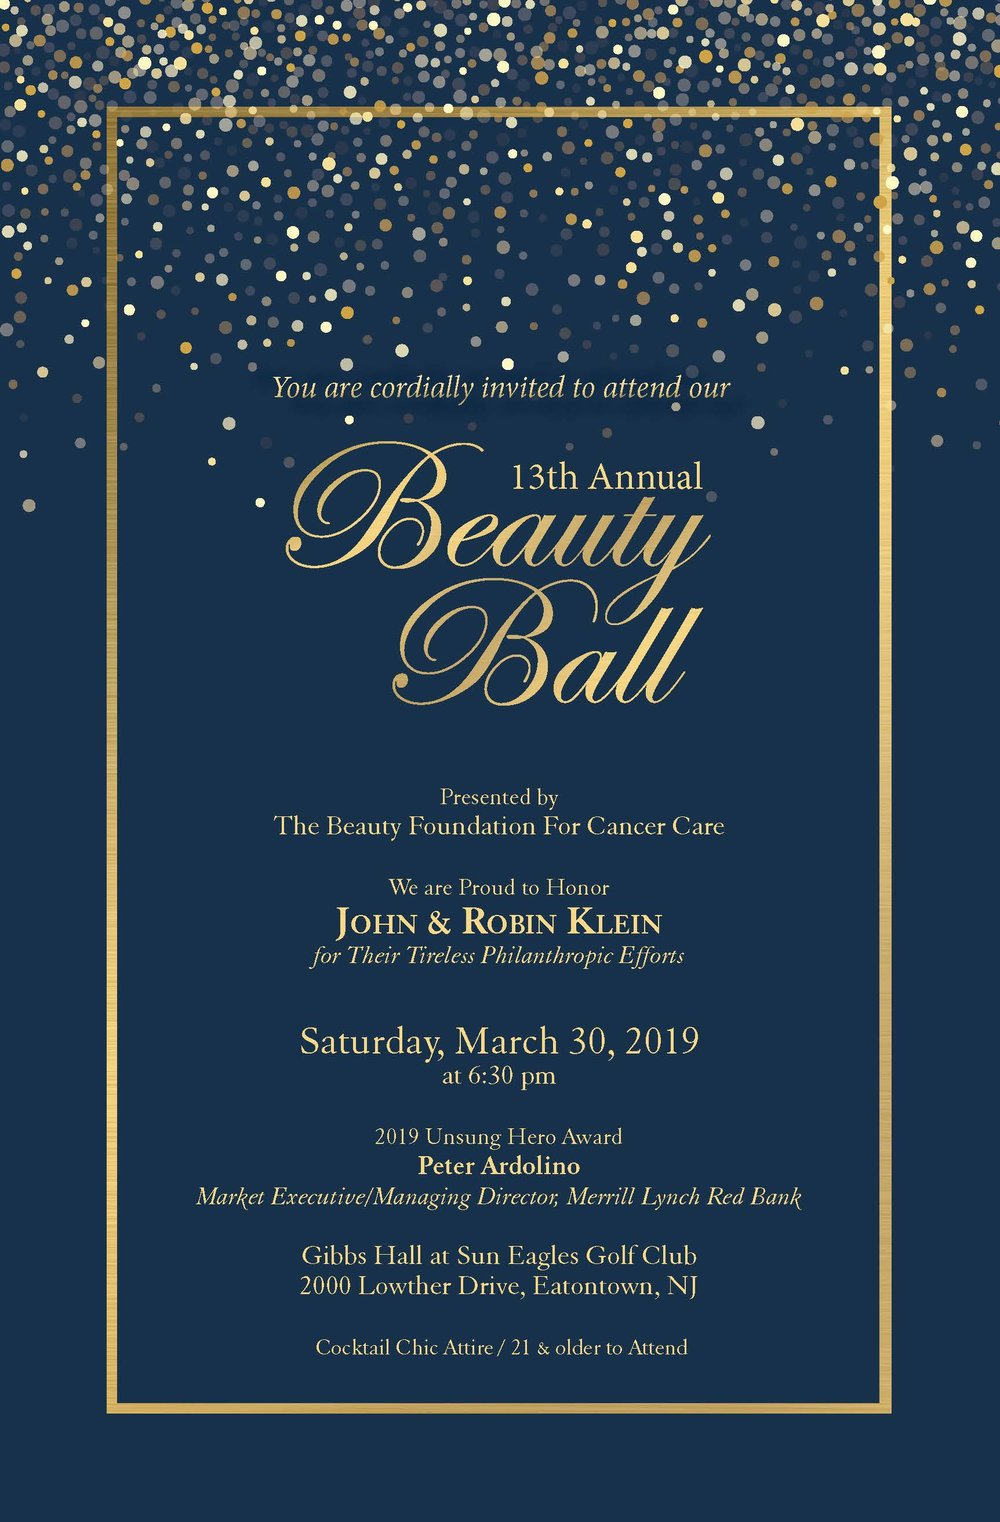 2019_Beauty_Ball_invite.jpg